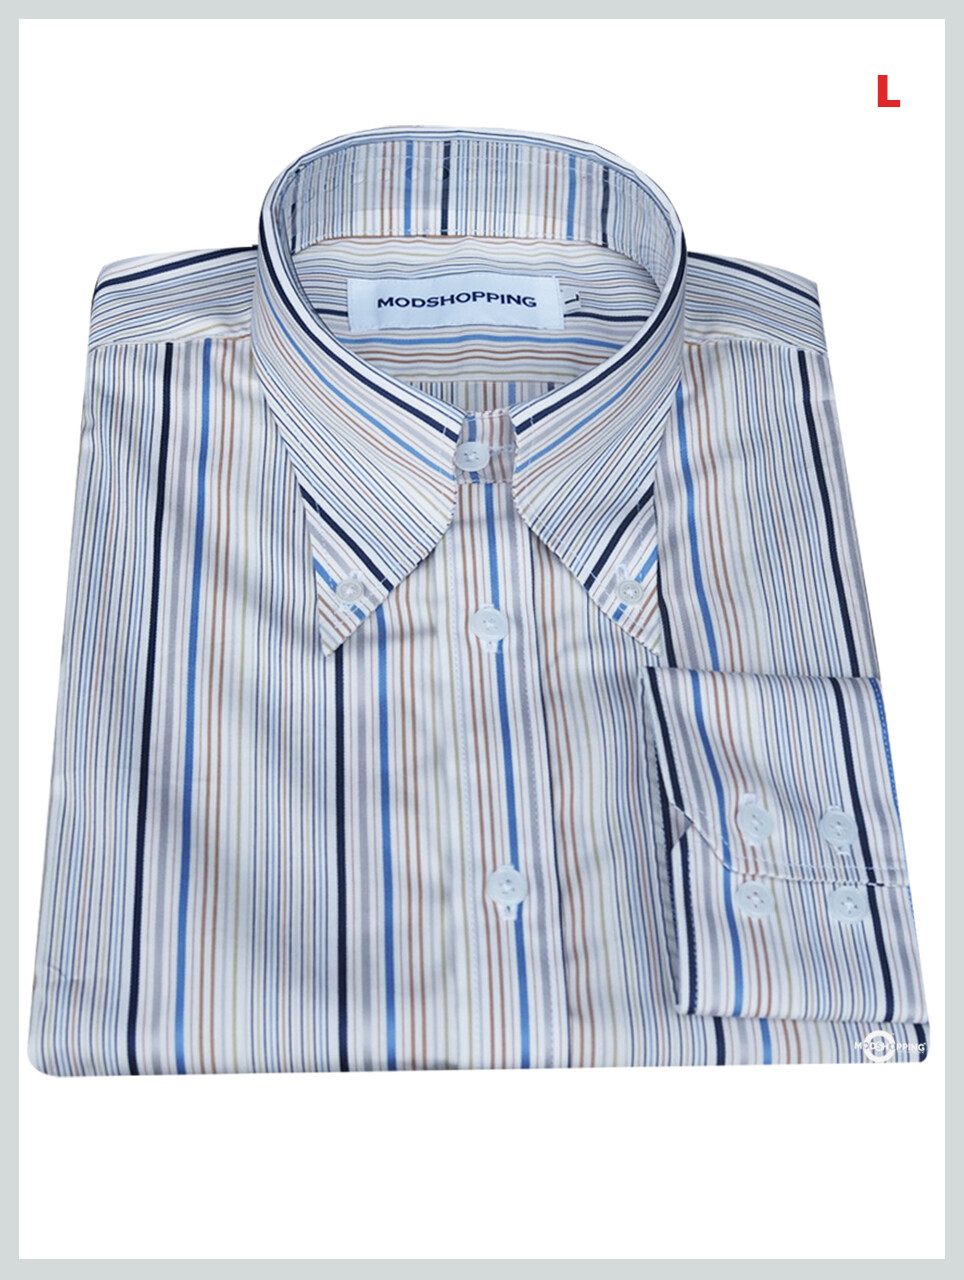 This Shirt Only. Multi-Color Stripe Shirt